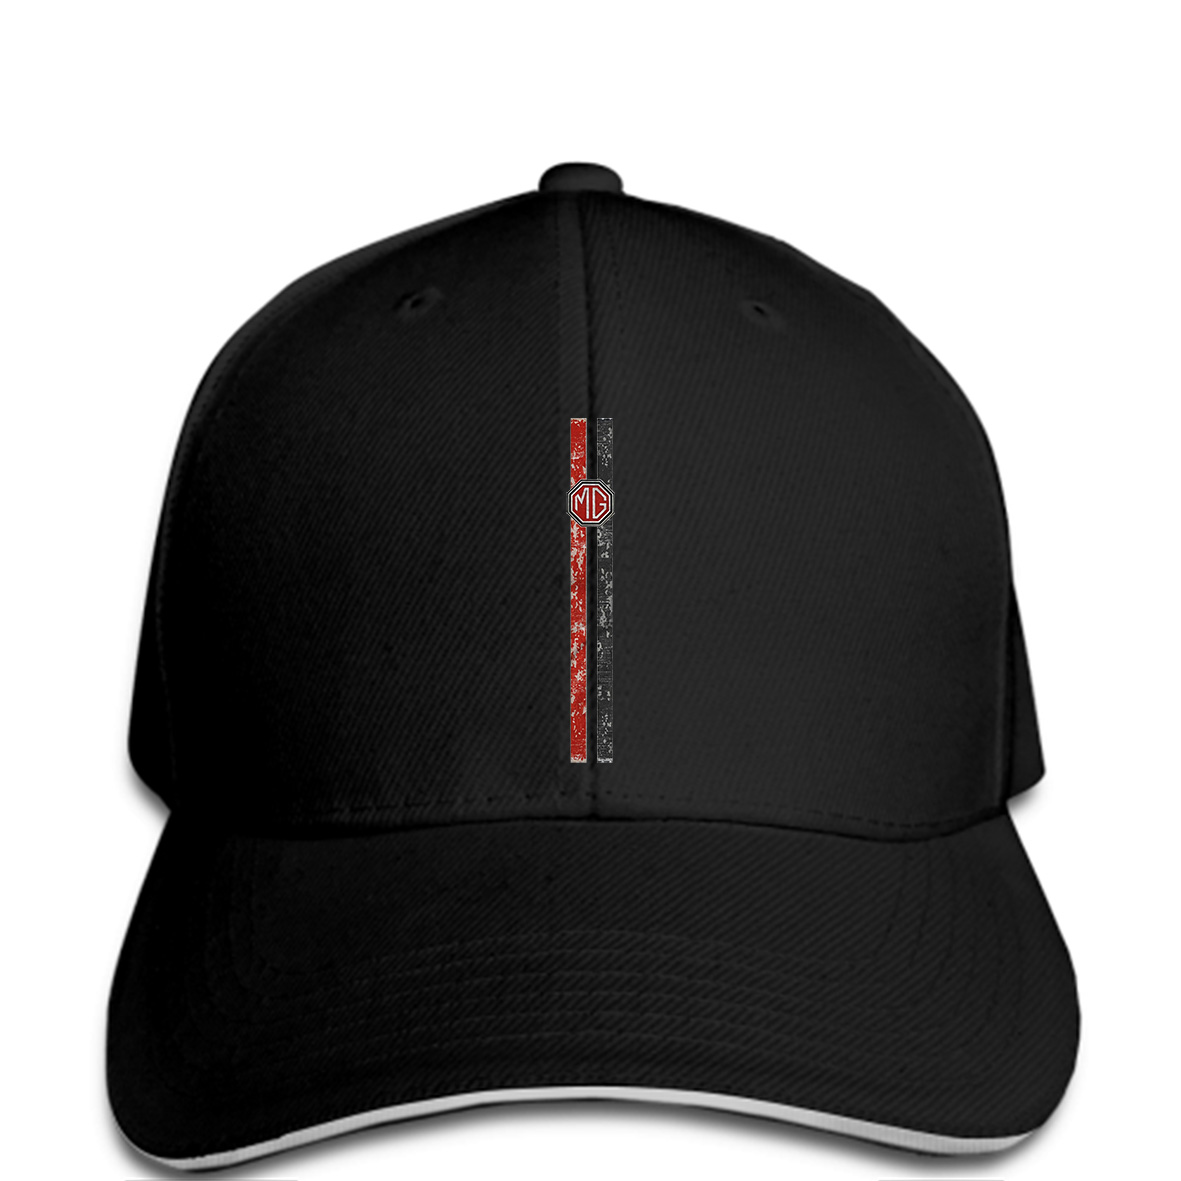 Treble Clef Embroidered Polo Baseball Cap Dad Hat